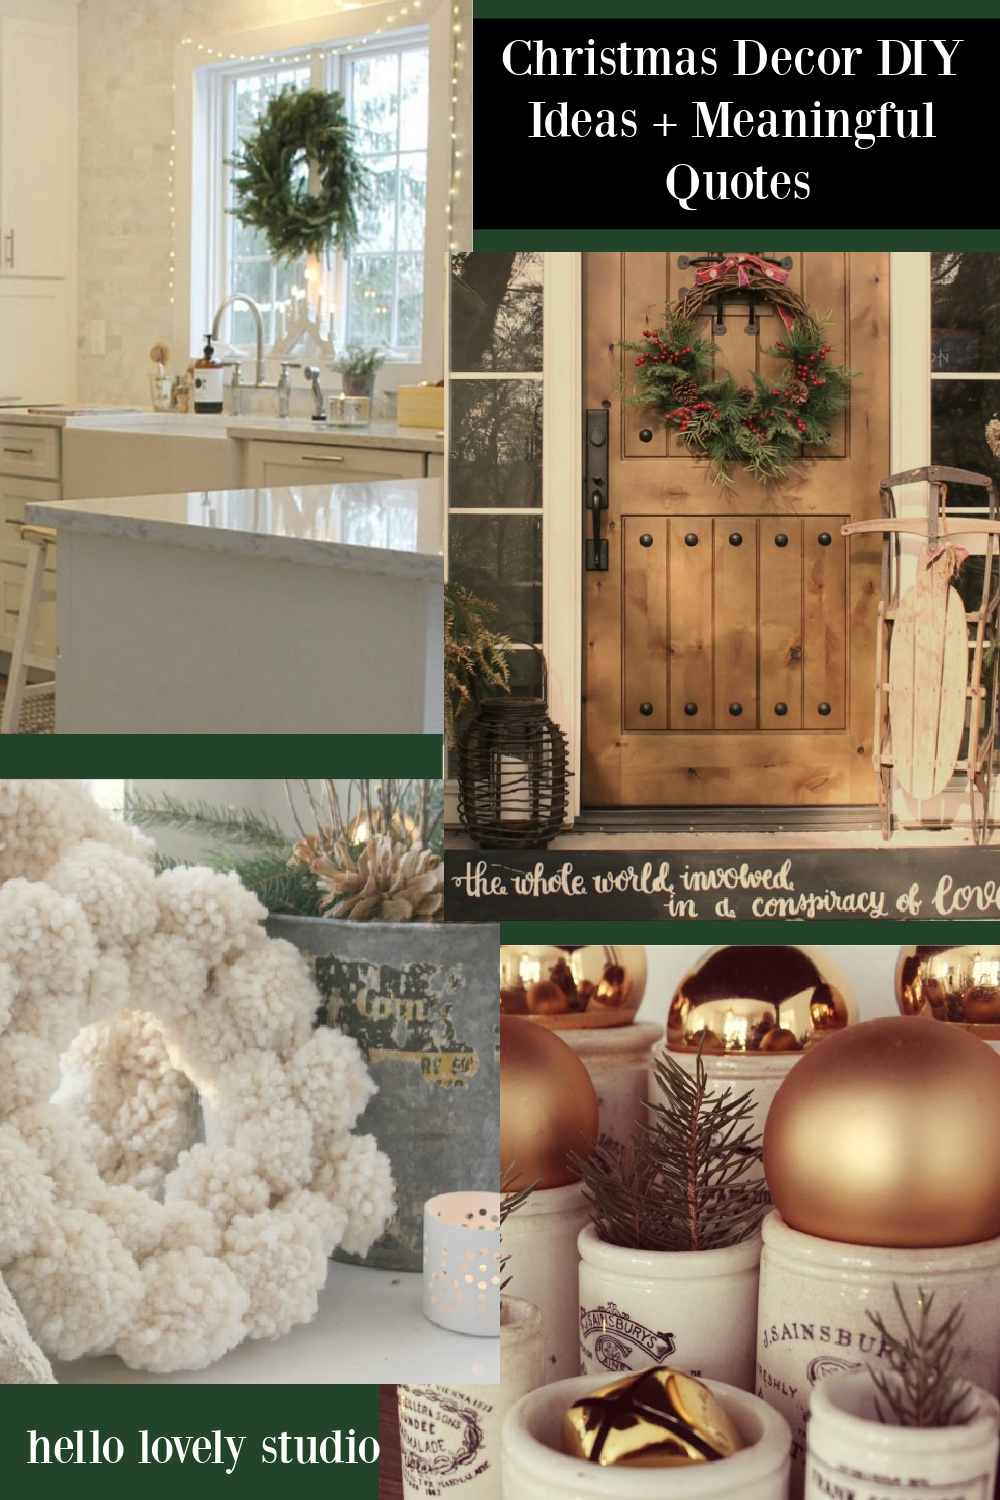 Christmas Decor DIY Ideas & Meaningful Quotes - come discover ideas for a handmade holiday on Hello Lovely Studio. #christmasdiy #hellolovelystudio #christmascrafts #holidaydecor